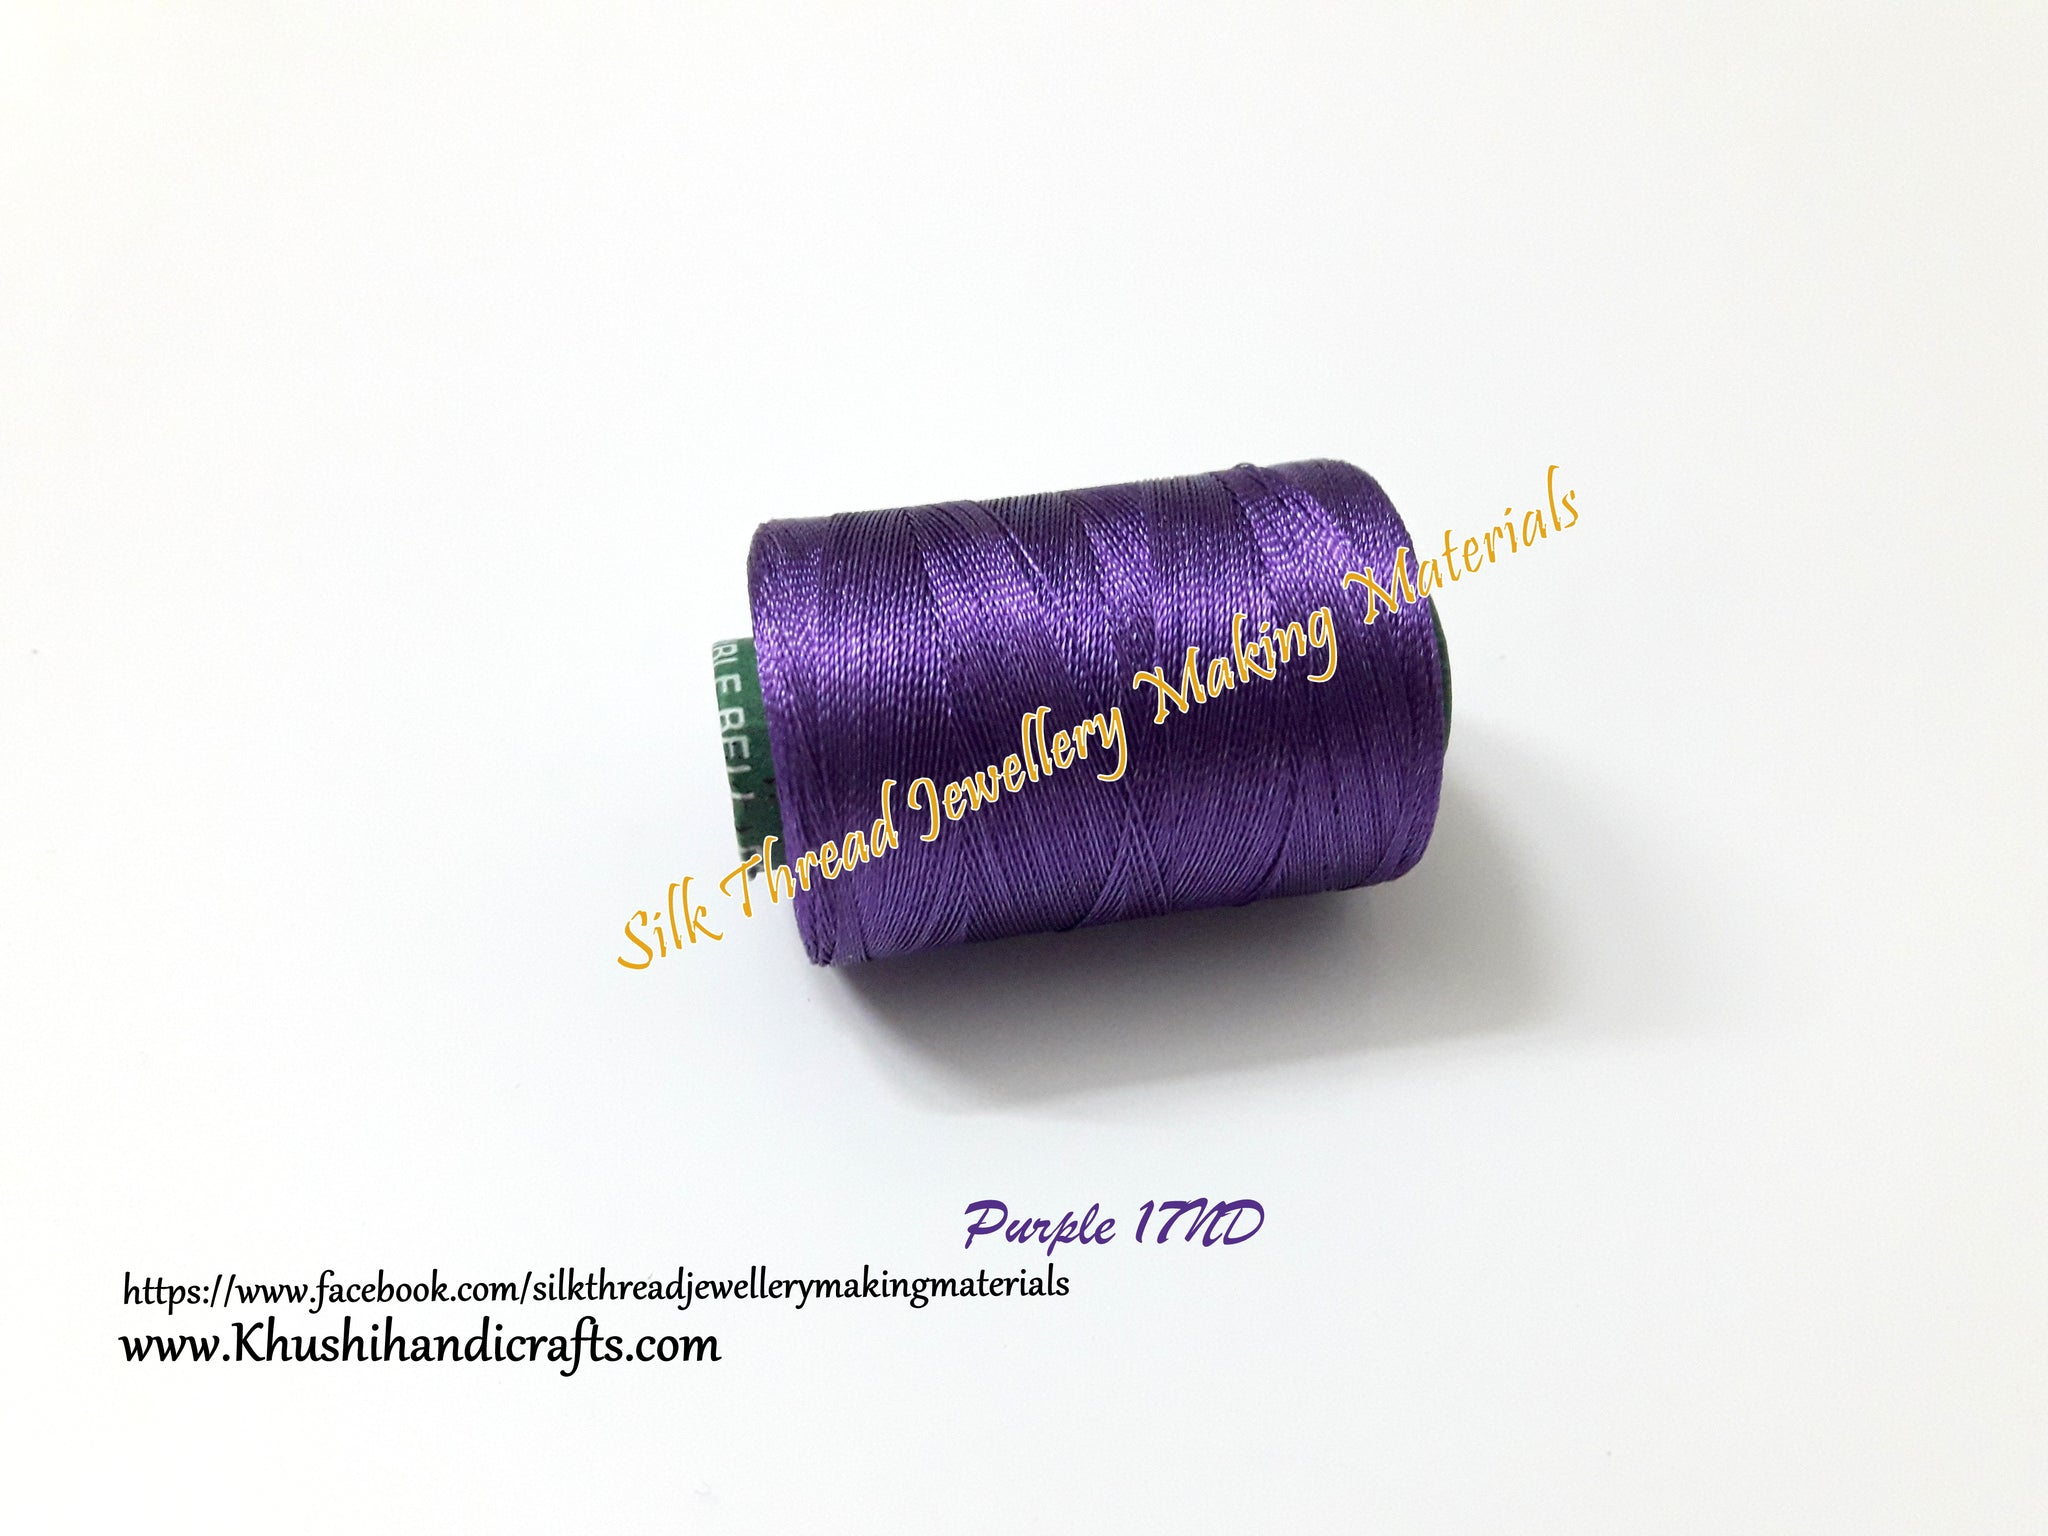 Purple Double Bell Silk spool Shade 17ND